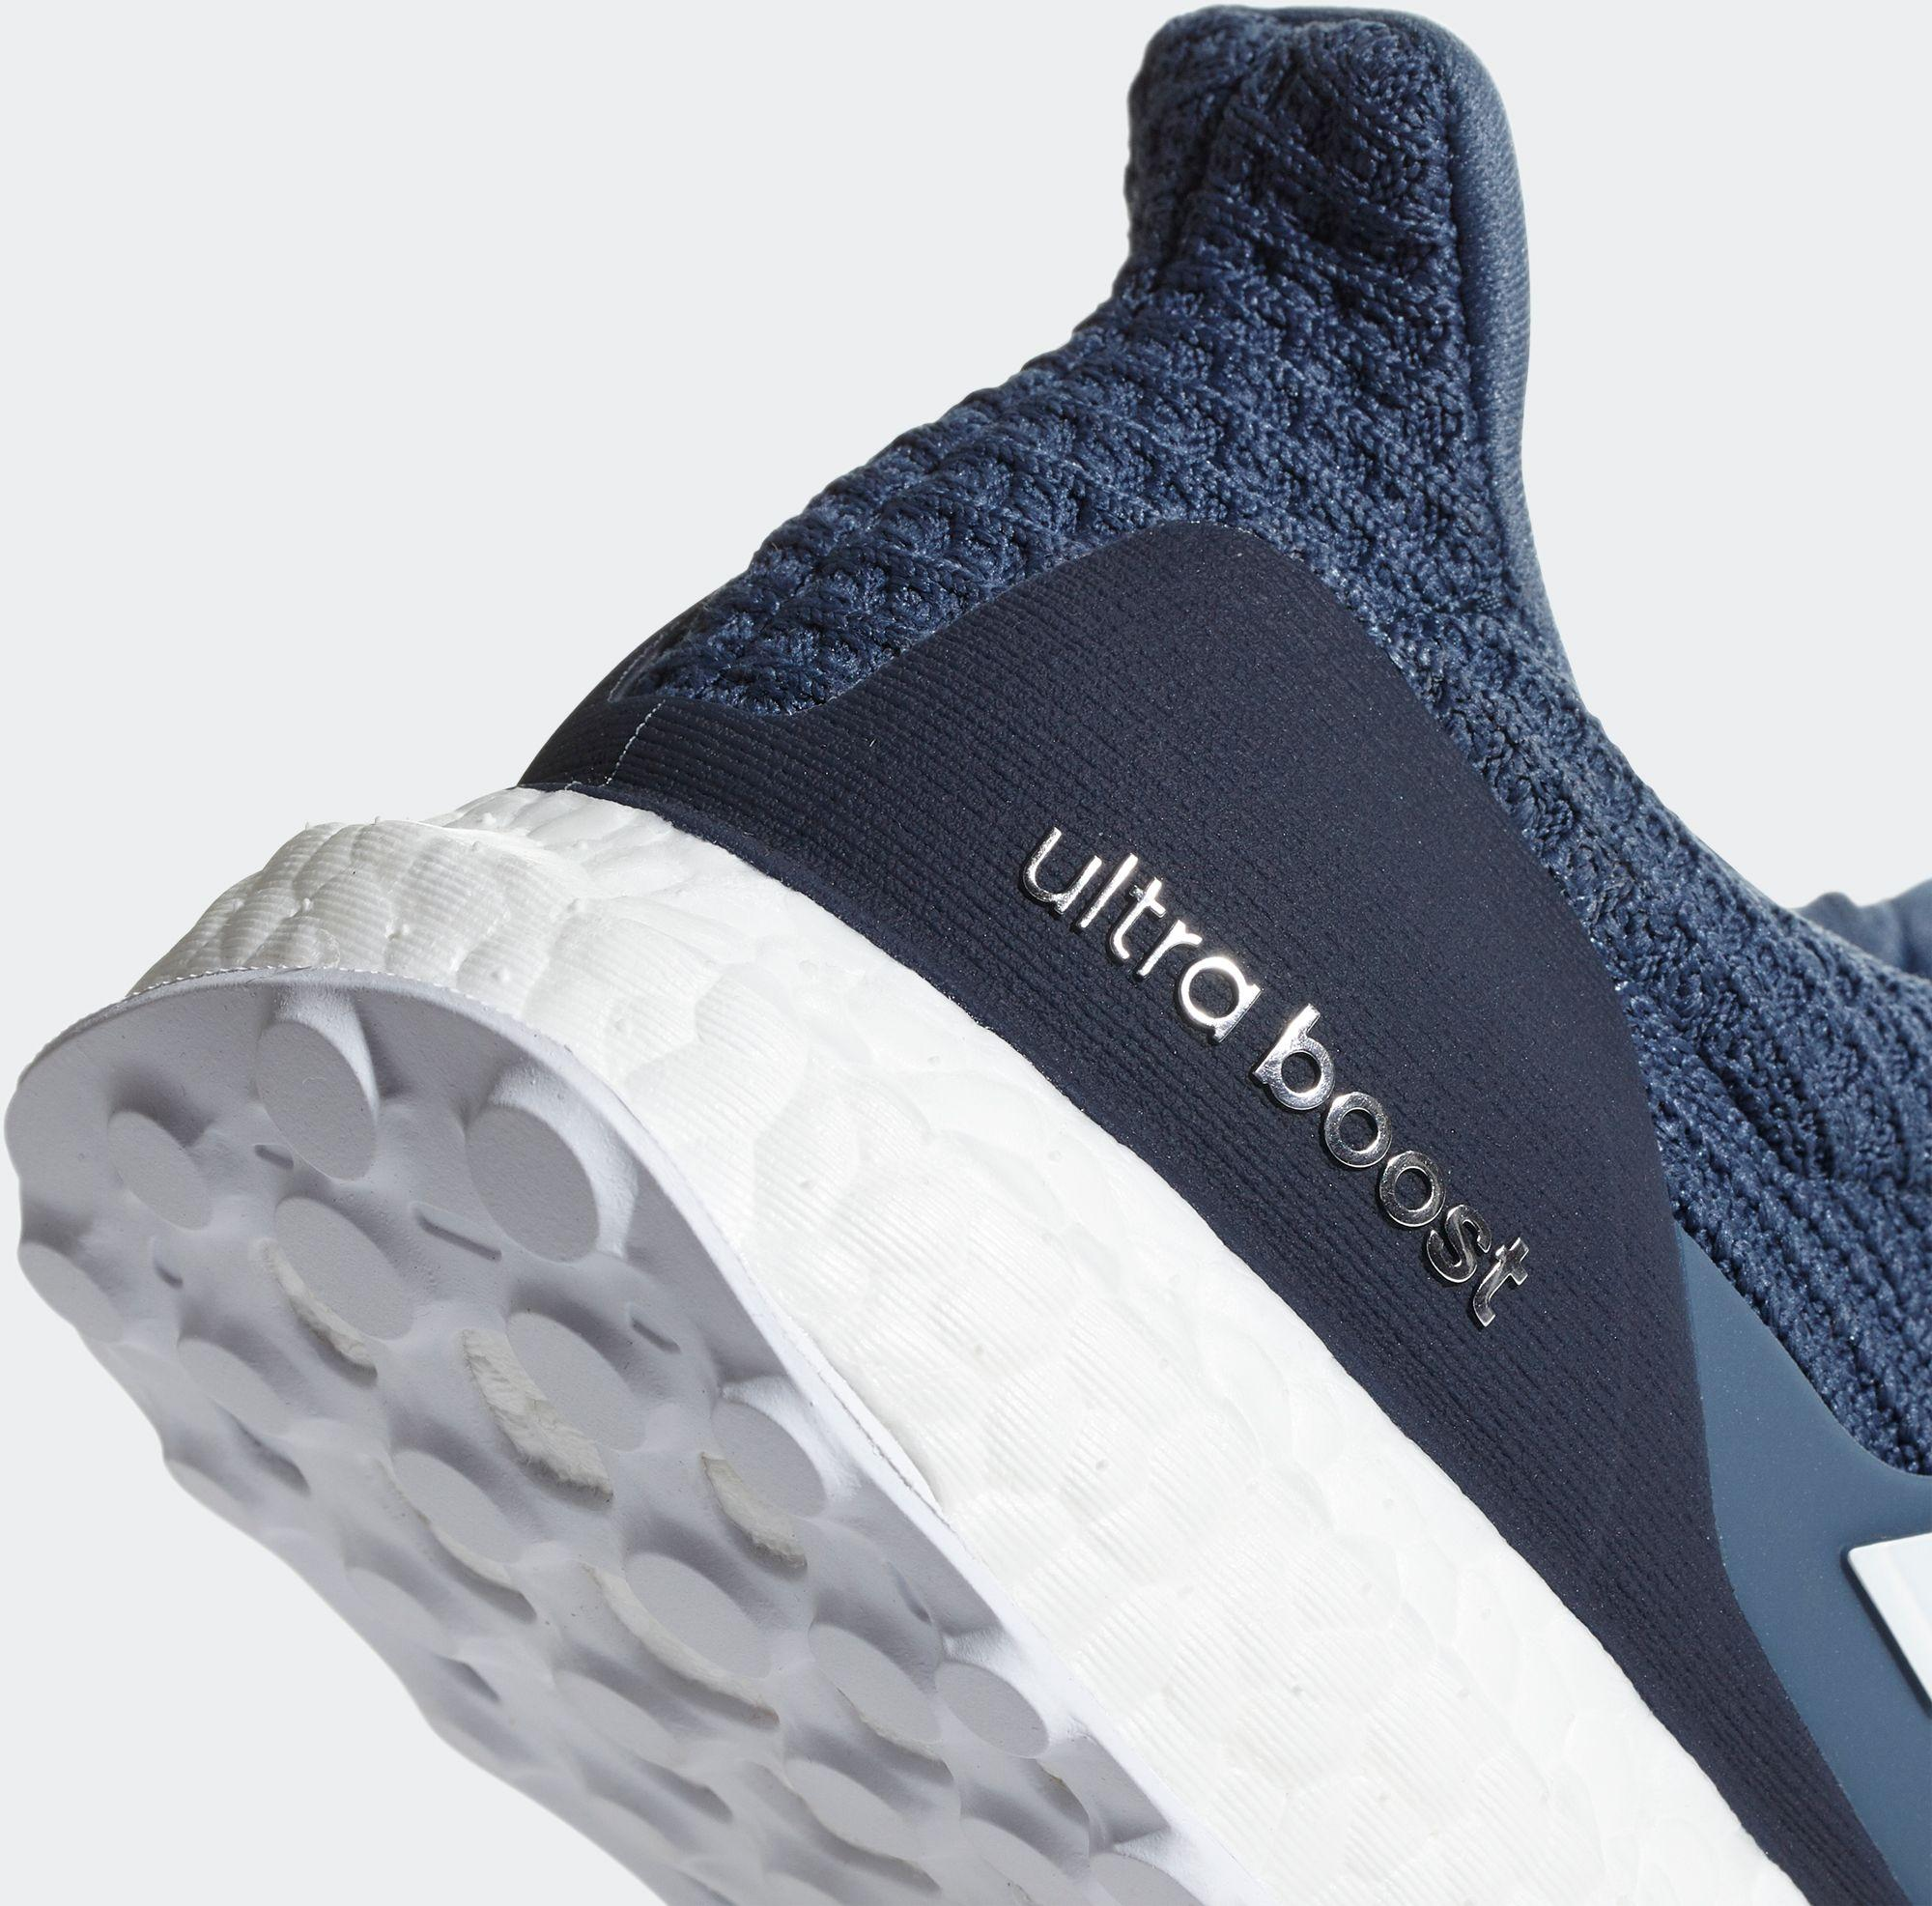 bb37c52be61a Lyst - adidas Ultraboost Dna Running Shoes in Blue for Men